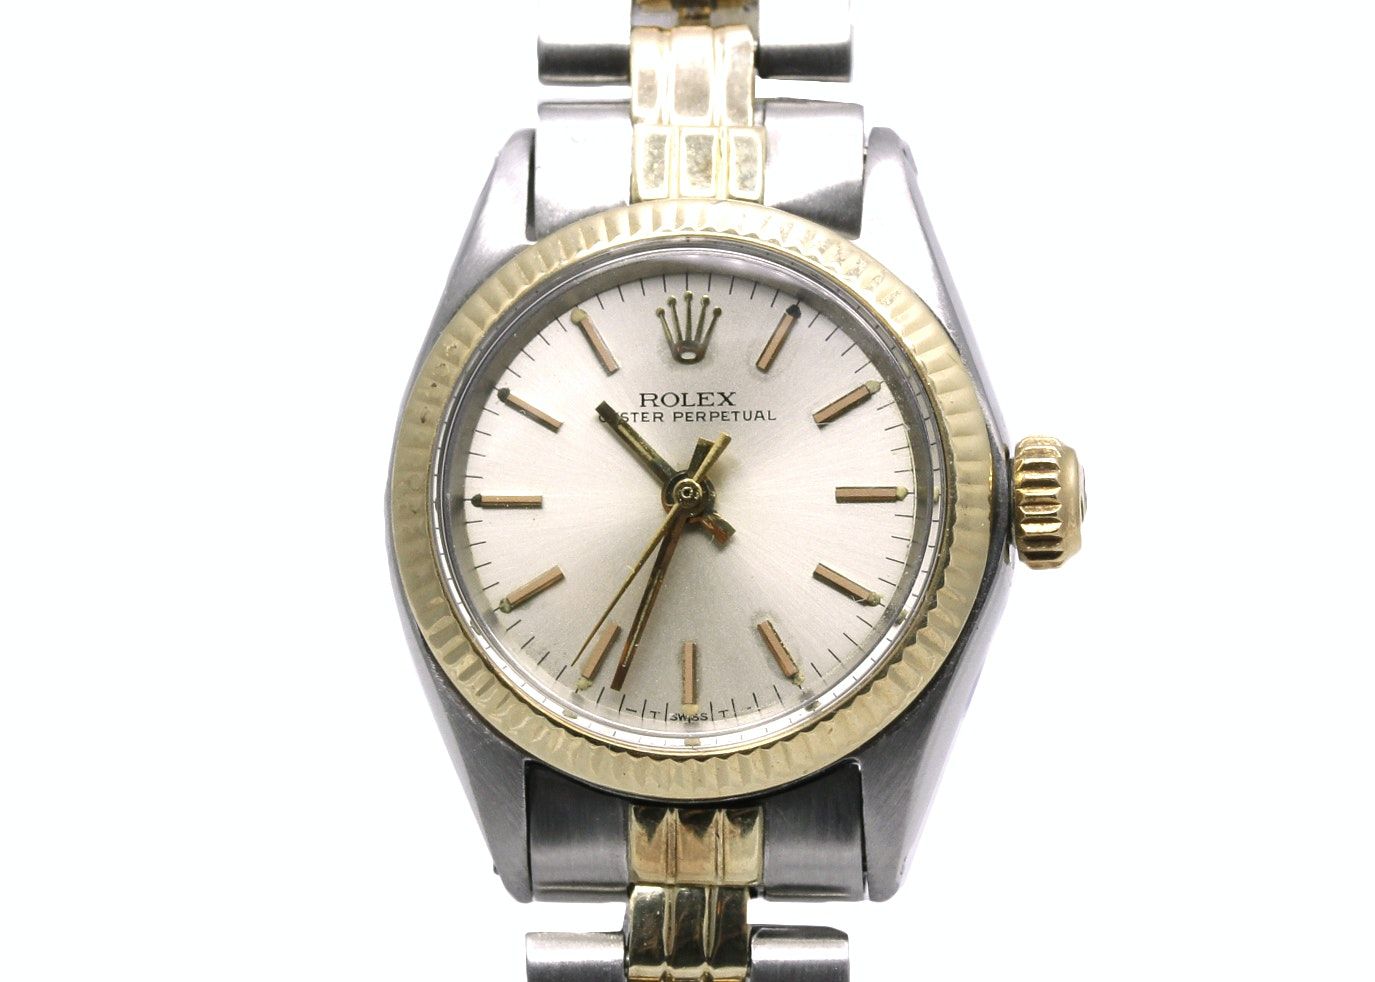 14K Gold Accented and Stainless Steel Rolex Oyster Perpetual Wristwatch